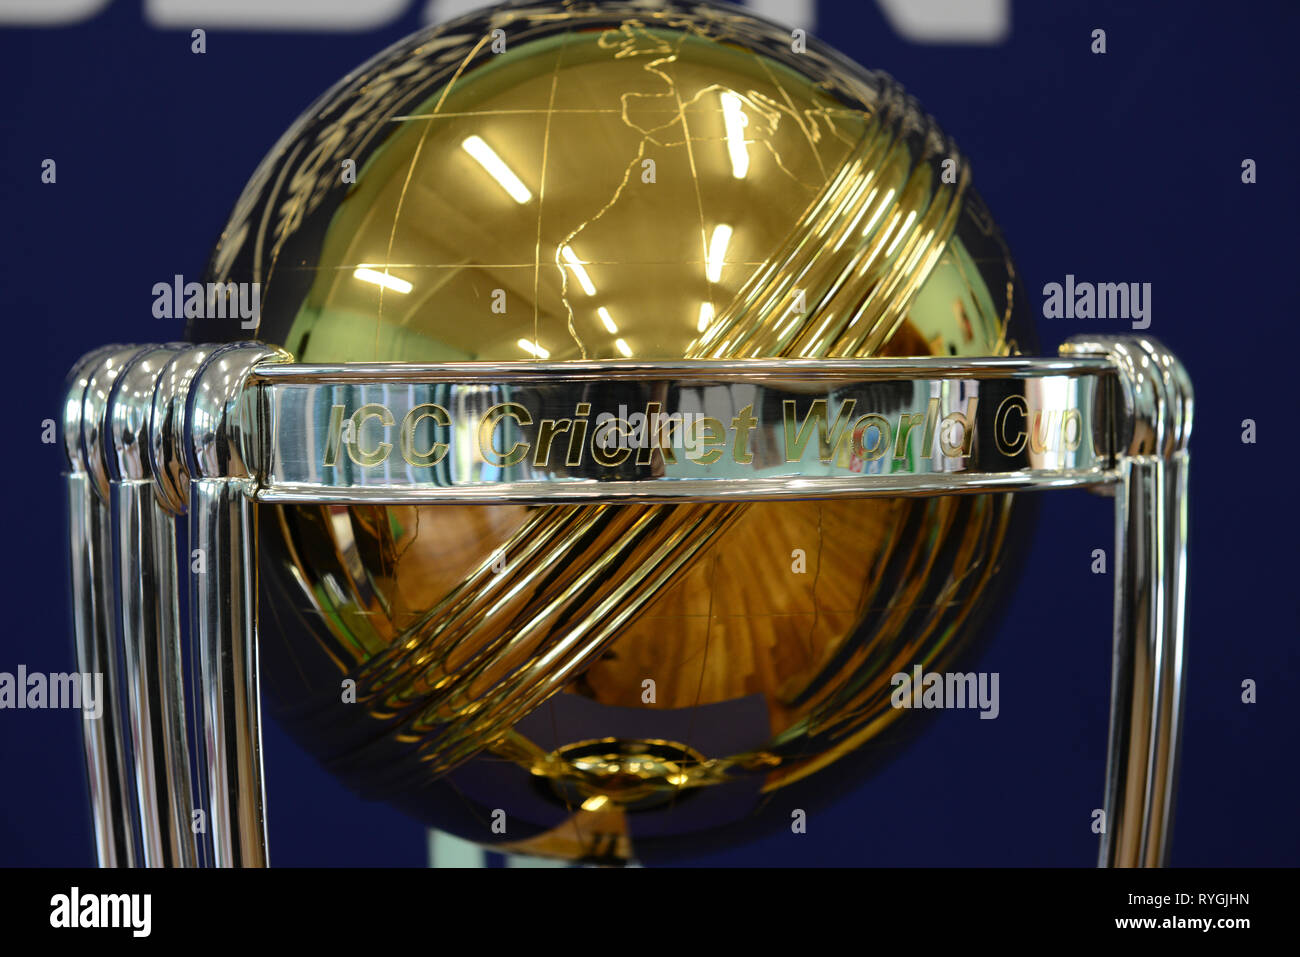 2019 icc cricket world cup trophy tour at aylestone school hereford stock image